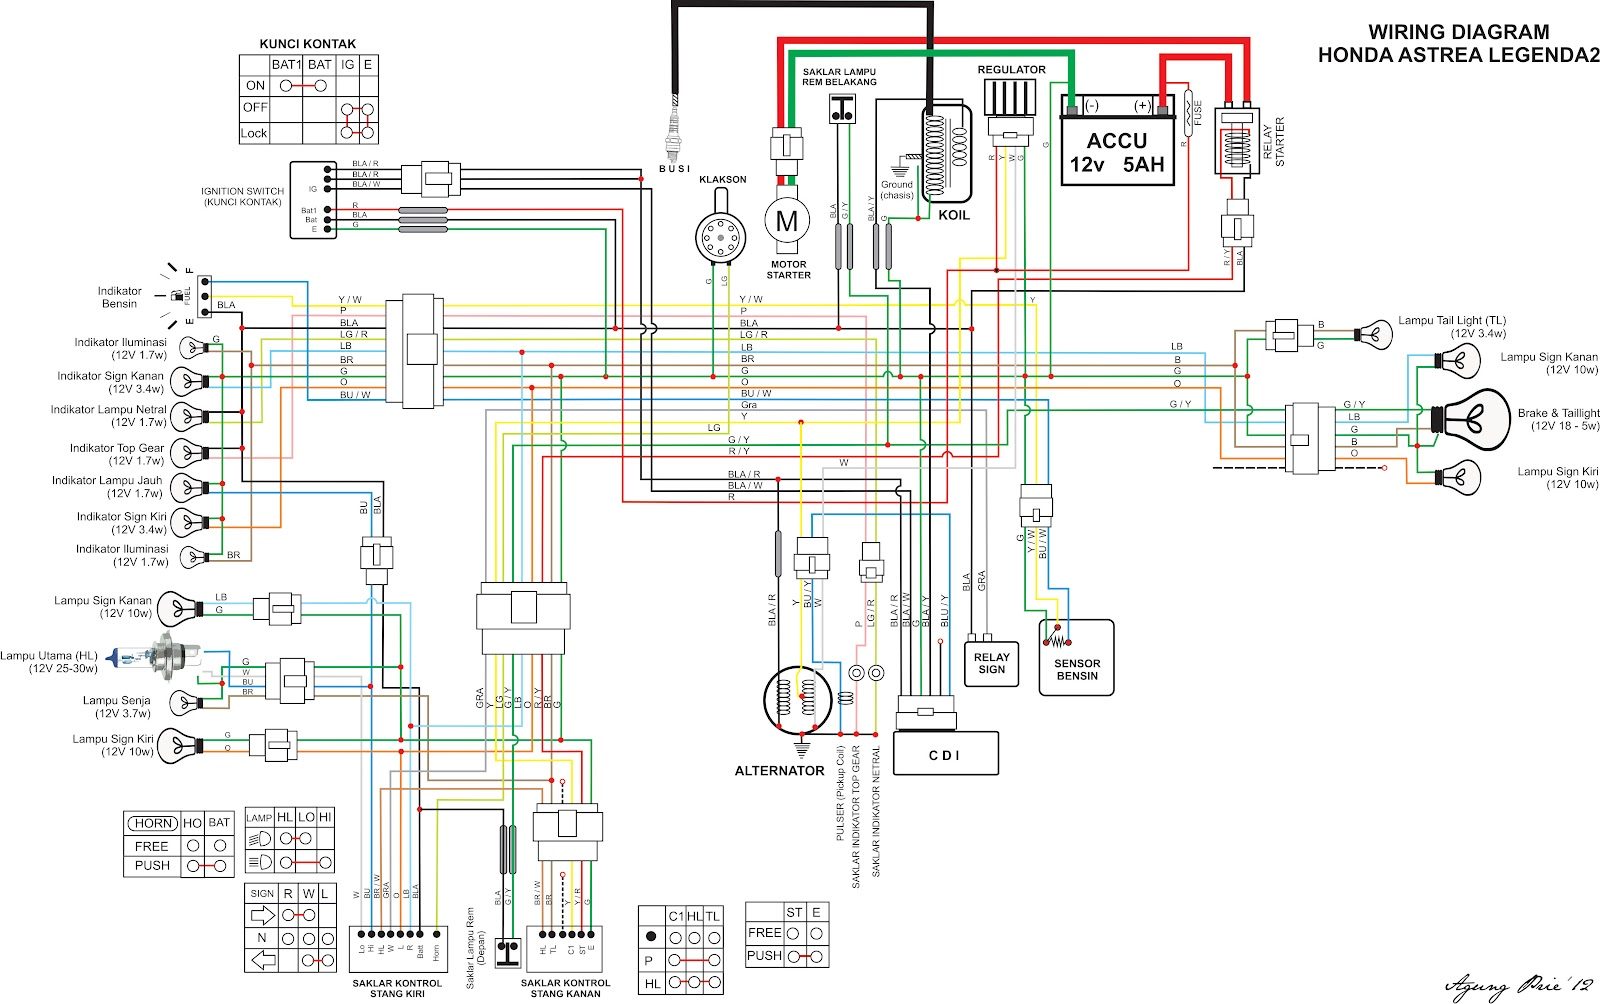 kelistrikan%2Bhonda%2Blegenda Jawa Wiring Diagram on bajaj wiring diagram, kia wiring diagram, nissan wiring diagram, garelli wiring diagram, tomos wiring diagram, chevrolet wiring diagram, kawasaki wiring diagram, hunter wiring diagram, toyota wiring diagram, kreidler wiring diagram, new holland wiring diagram, norton wiring diagram, dodge wiring diagram, husaberg wiring diagram, ossa wiring diagram, ajs wiring diagram, smc wiring diagram, cf moto wiring diagram, beta wiring diagram, honda wiring diagram,